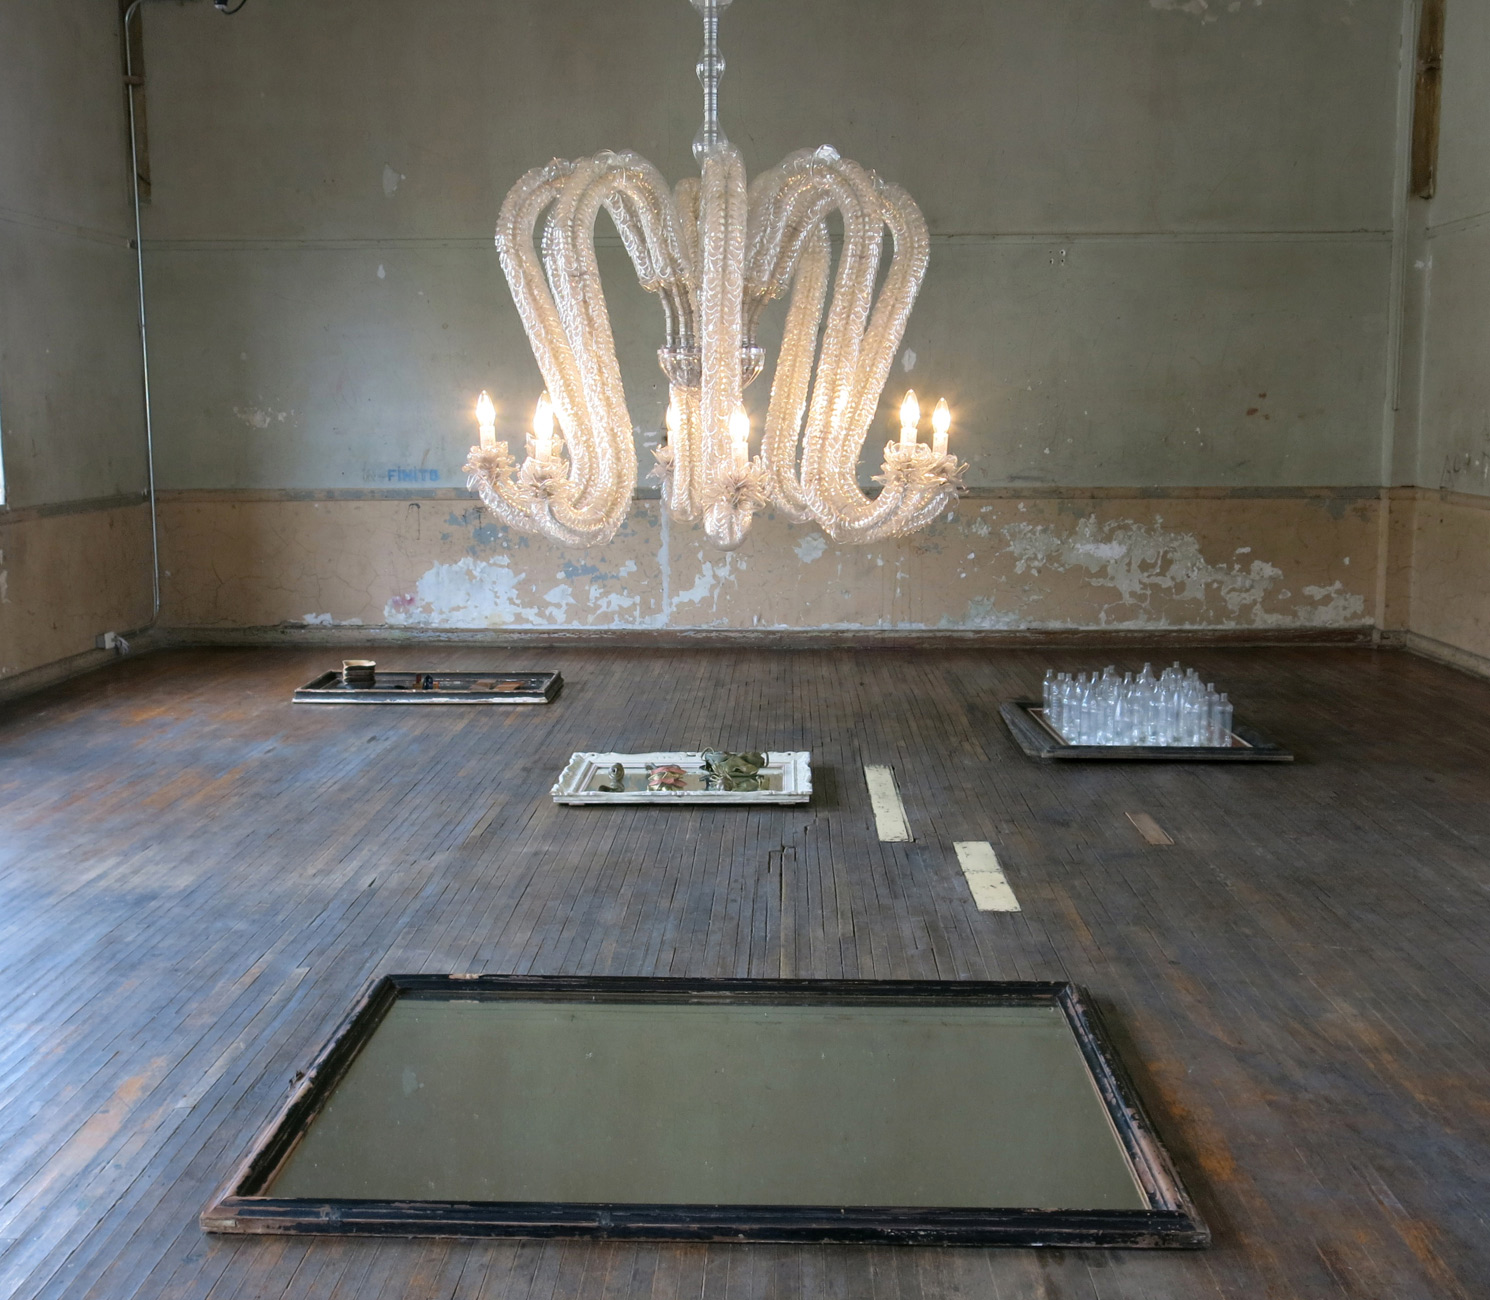 Octo-chandelier-Thierry-Jeannot-Marion-Friedmann-Gallery